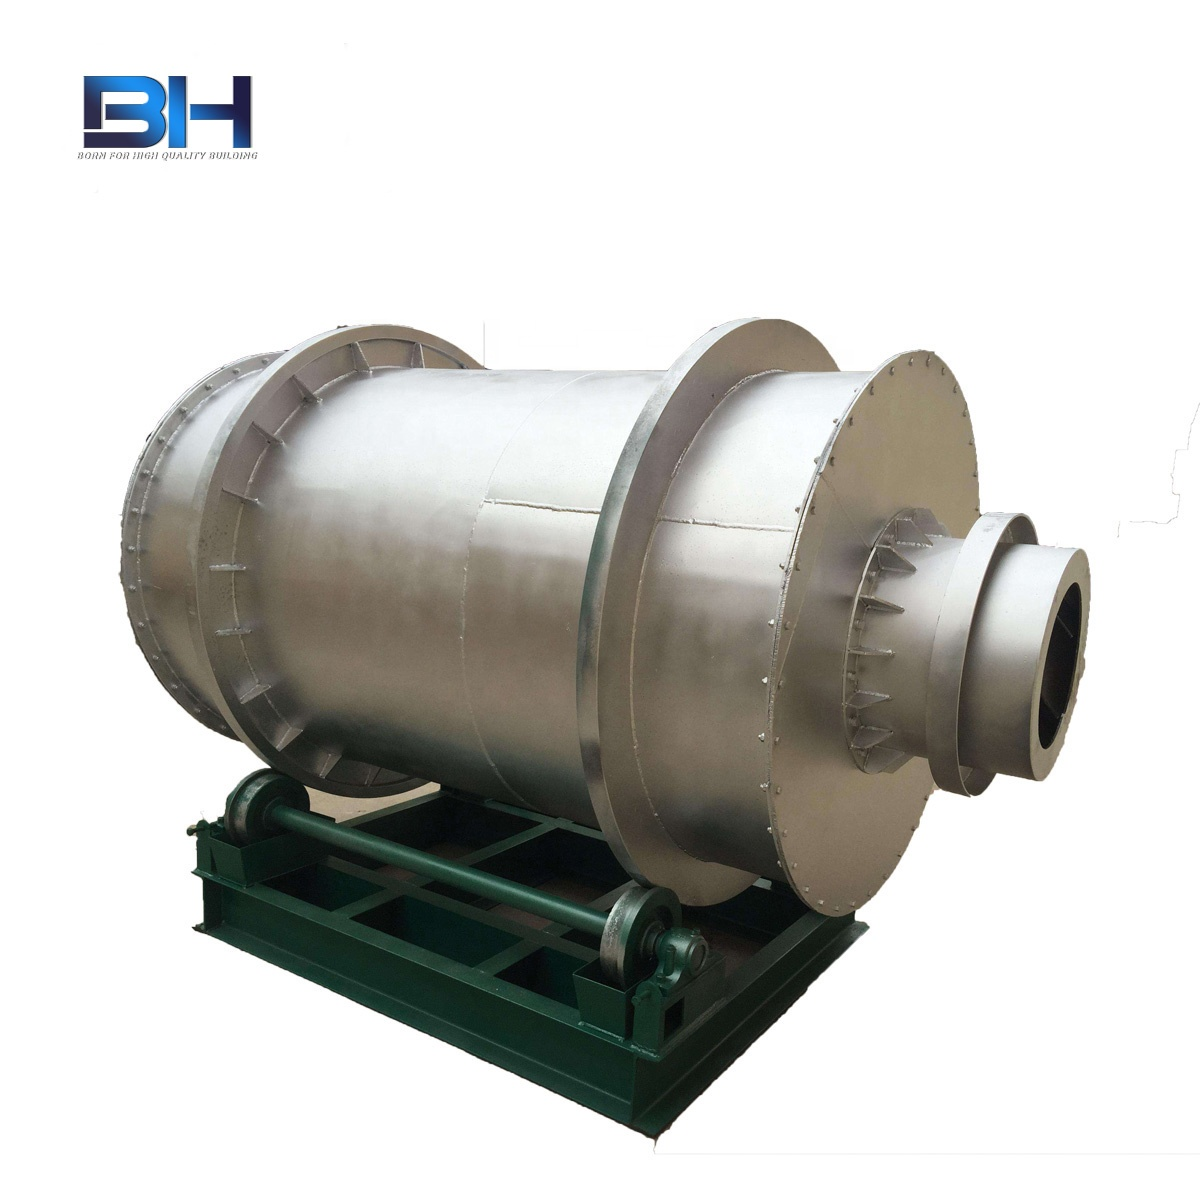 Paddy rotary drum mineral sand dryer kaolin continuous drying machine equipment fly ash drying production line